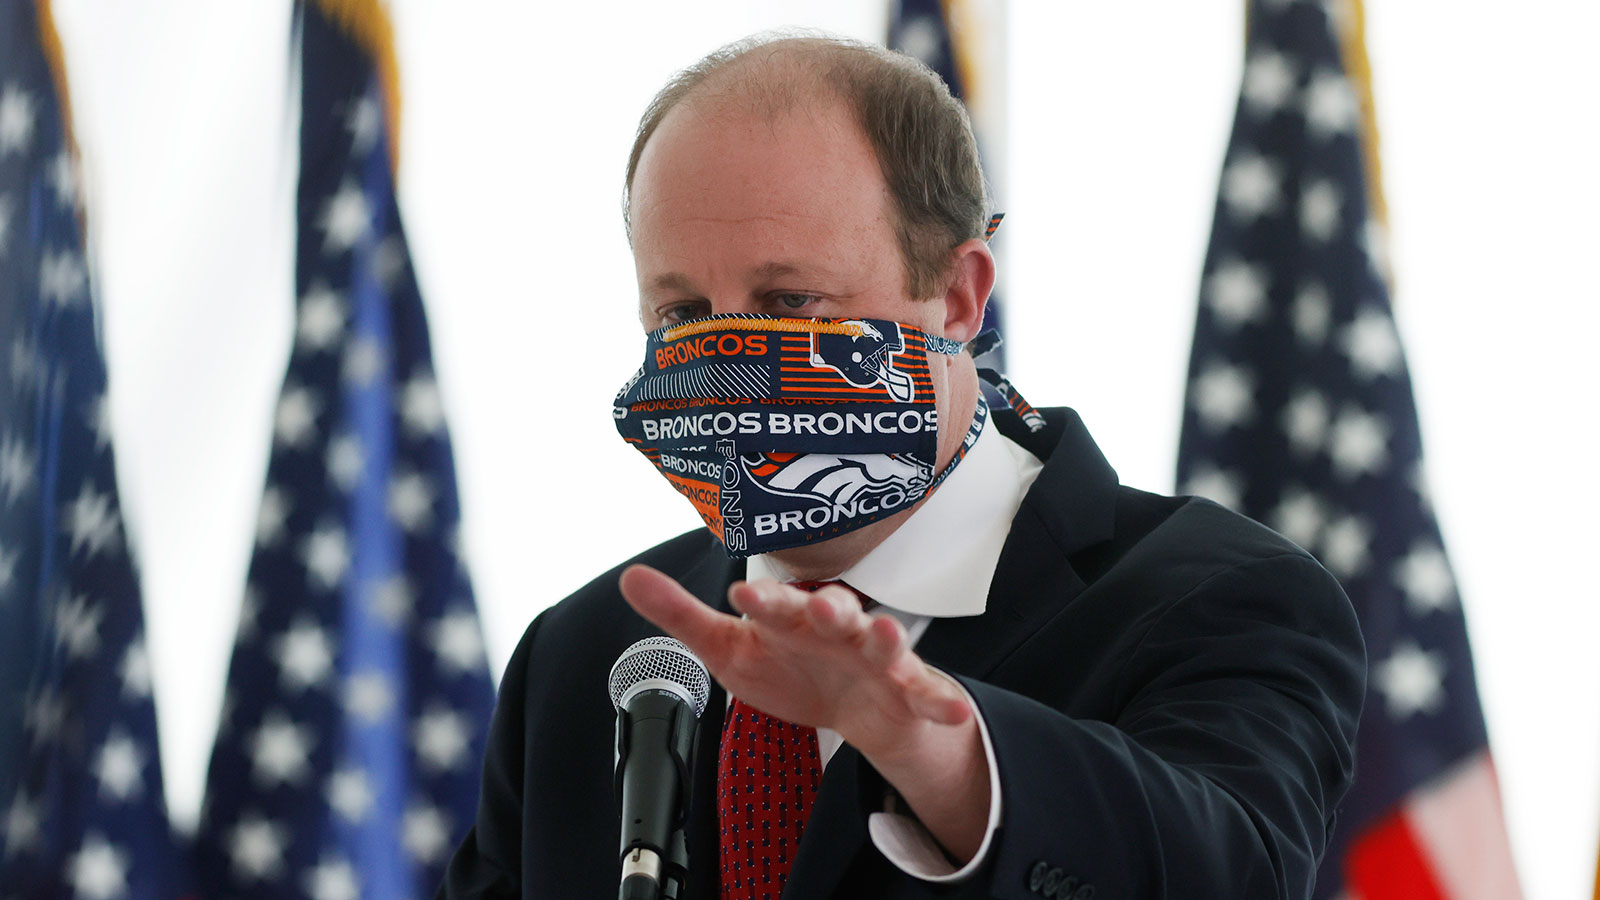 Colorado Governor Jared Polis wears a face mask as he answers a question during a news conference to update the state's efforts to stop the spread of the new coronavirus in Denver, Colorado on April 22.